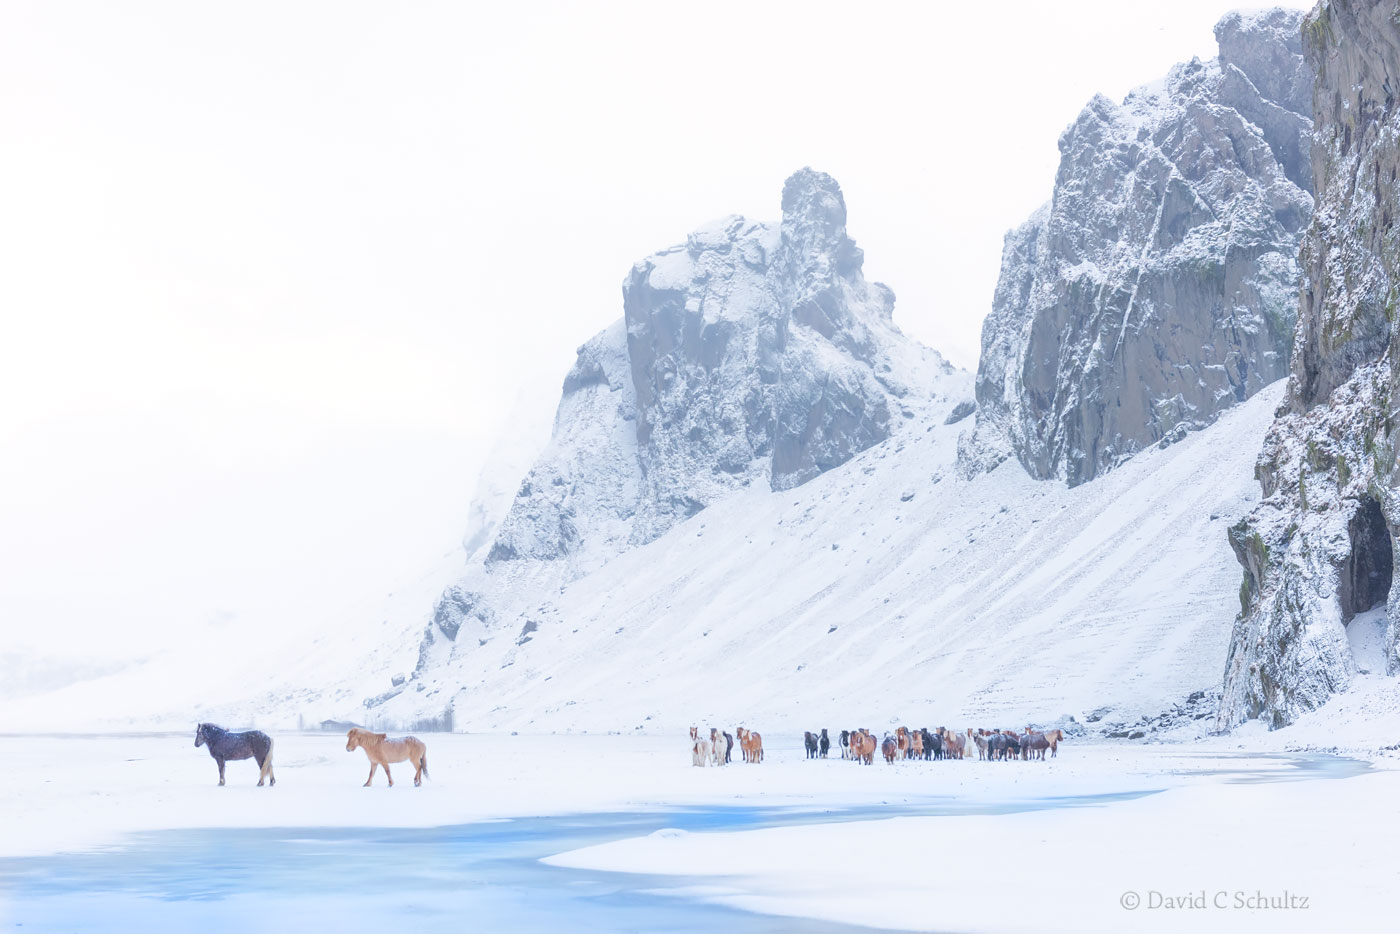 Winter and Icelandic Horses - Image #47-2843